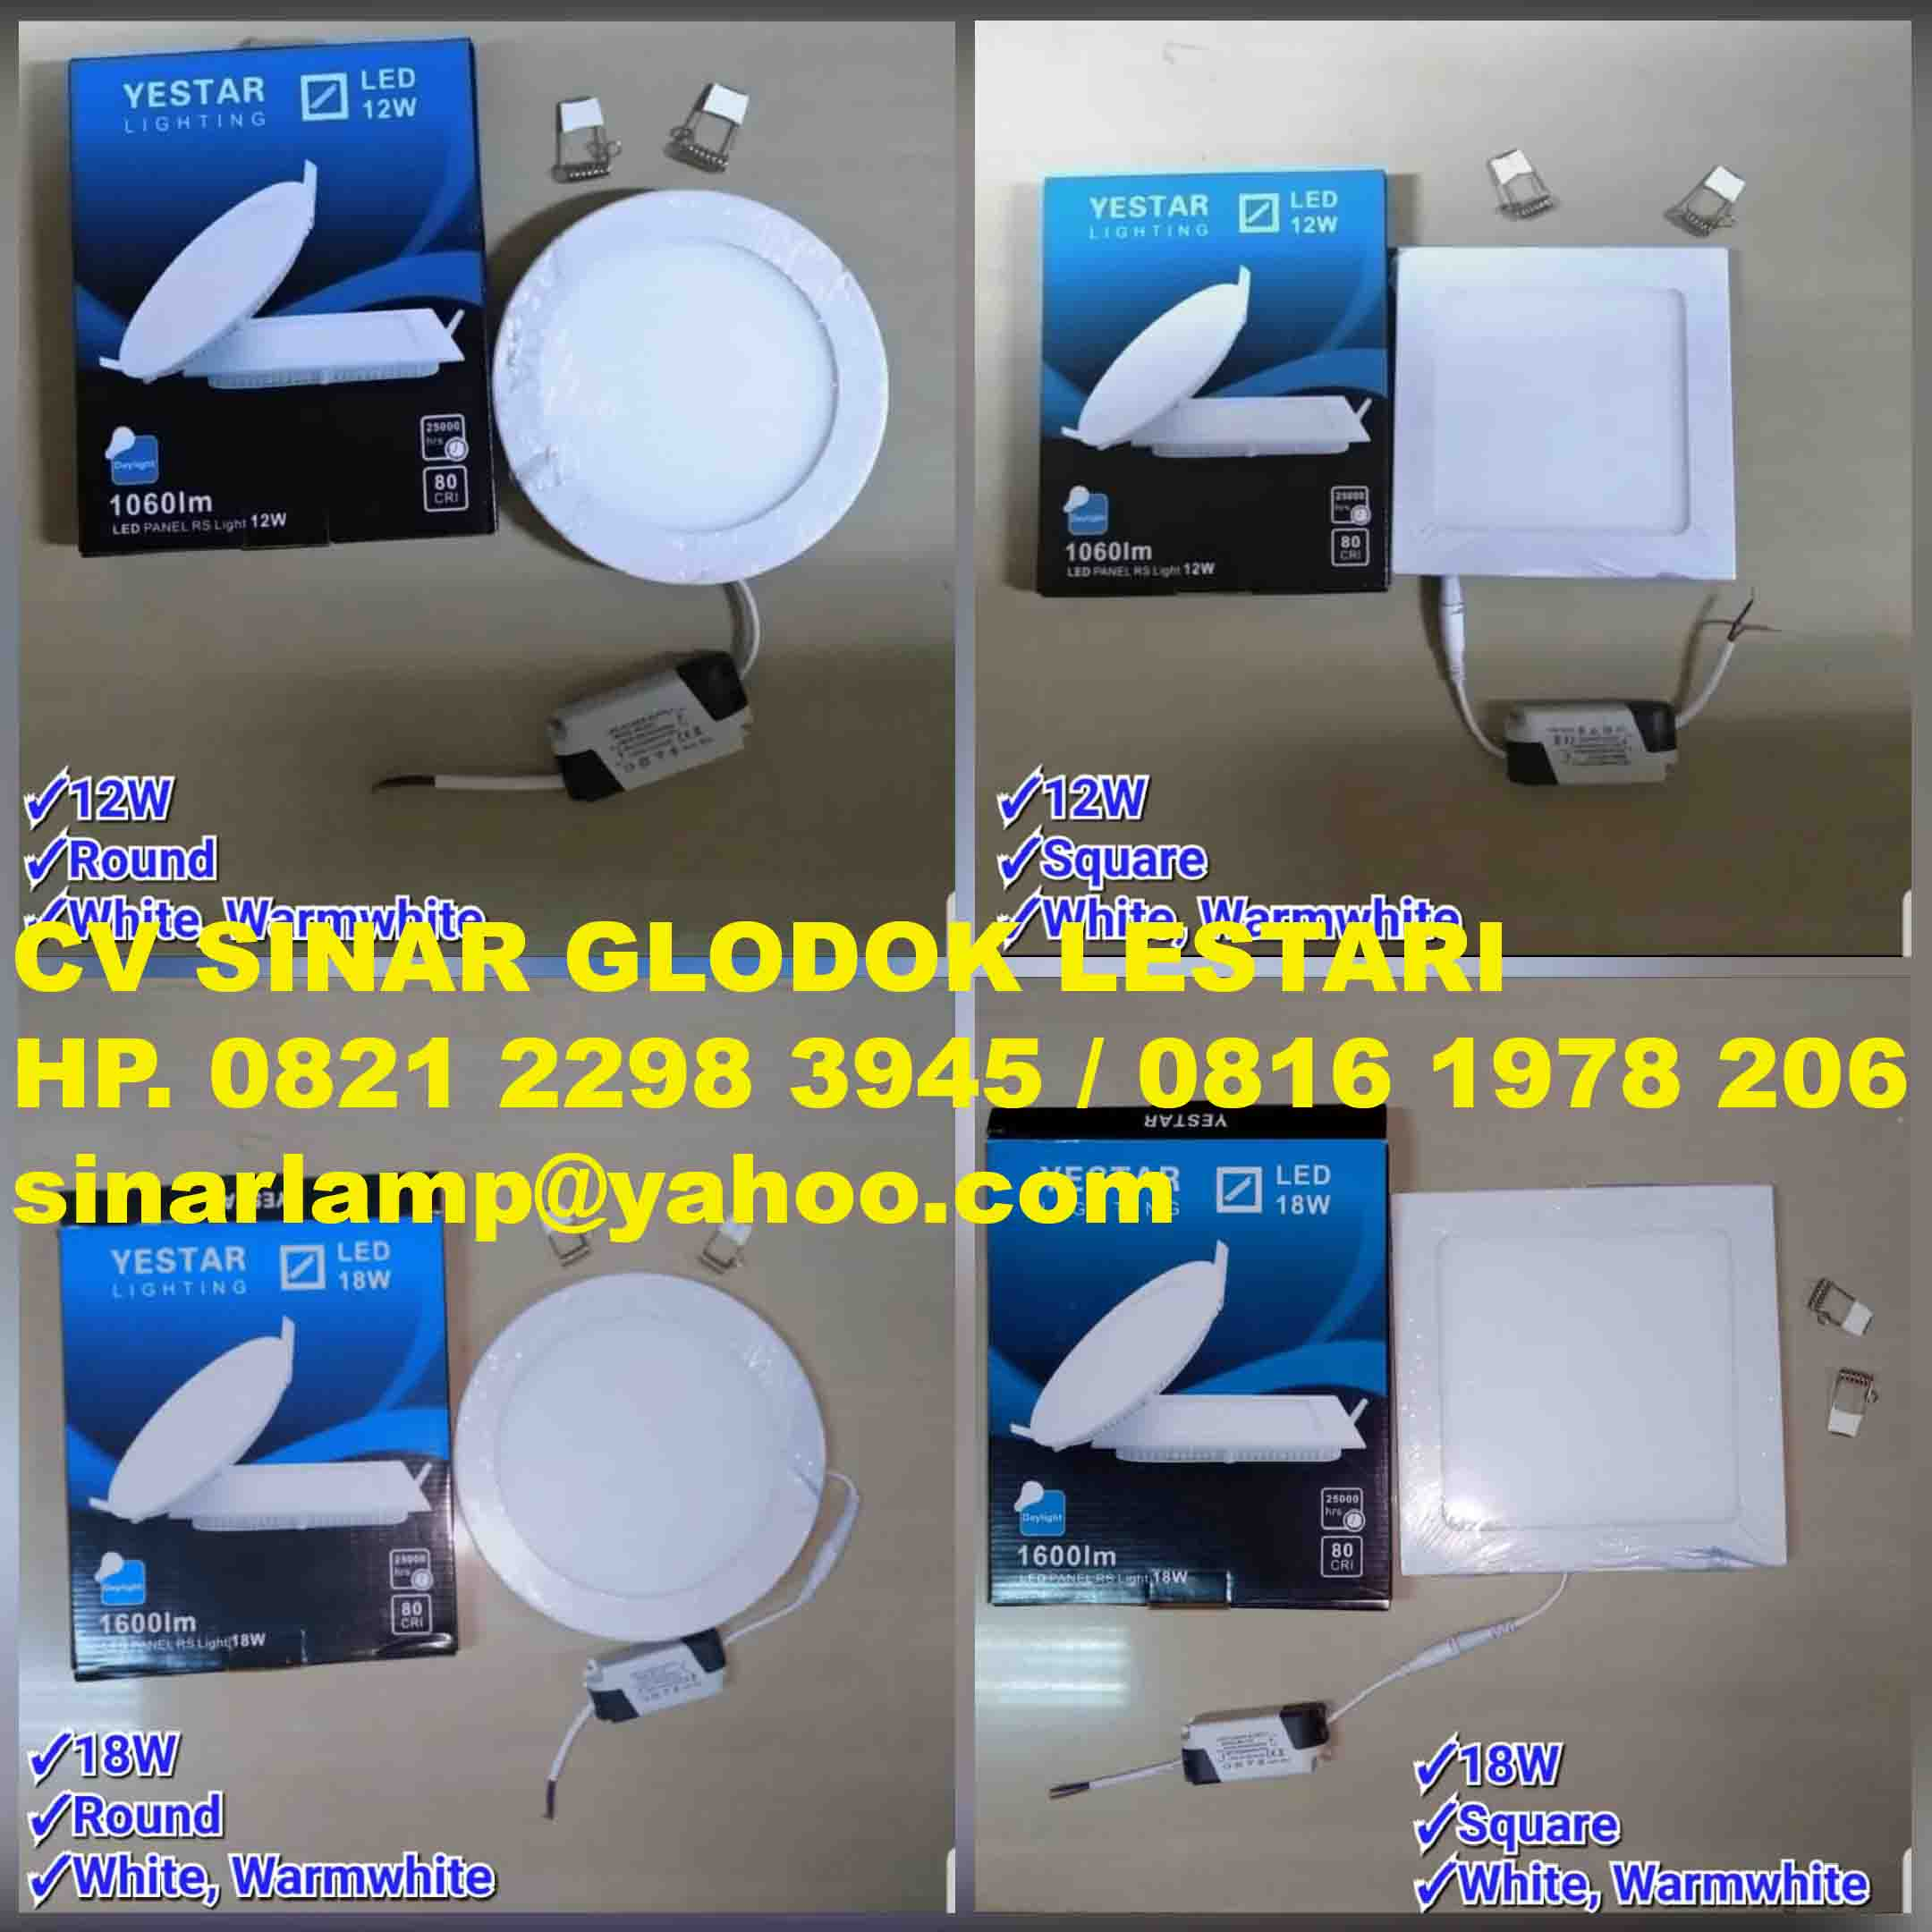 Lampu Downlight LED 12 watt dan 18 watt Yestar